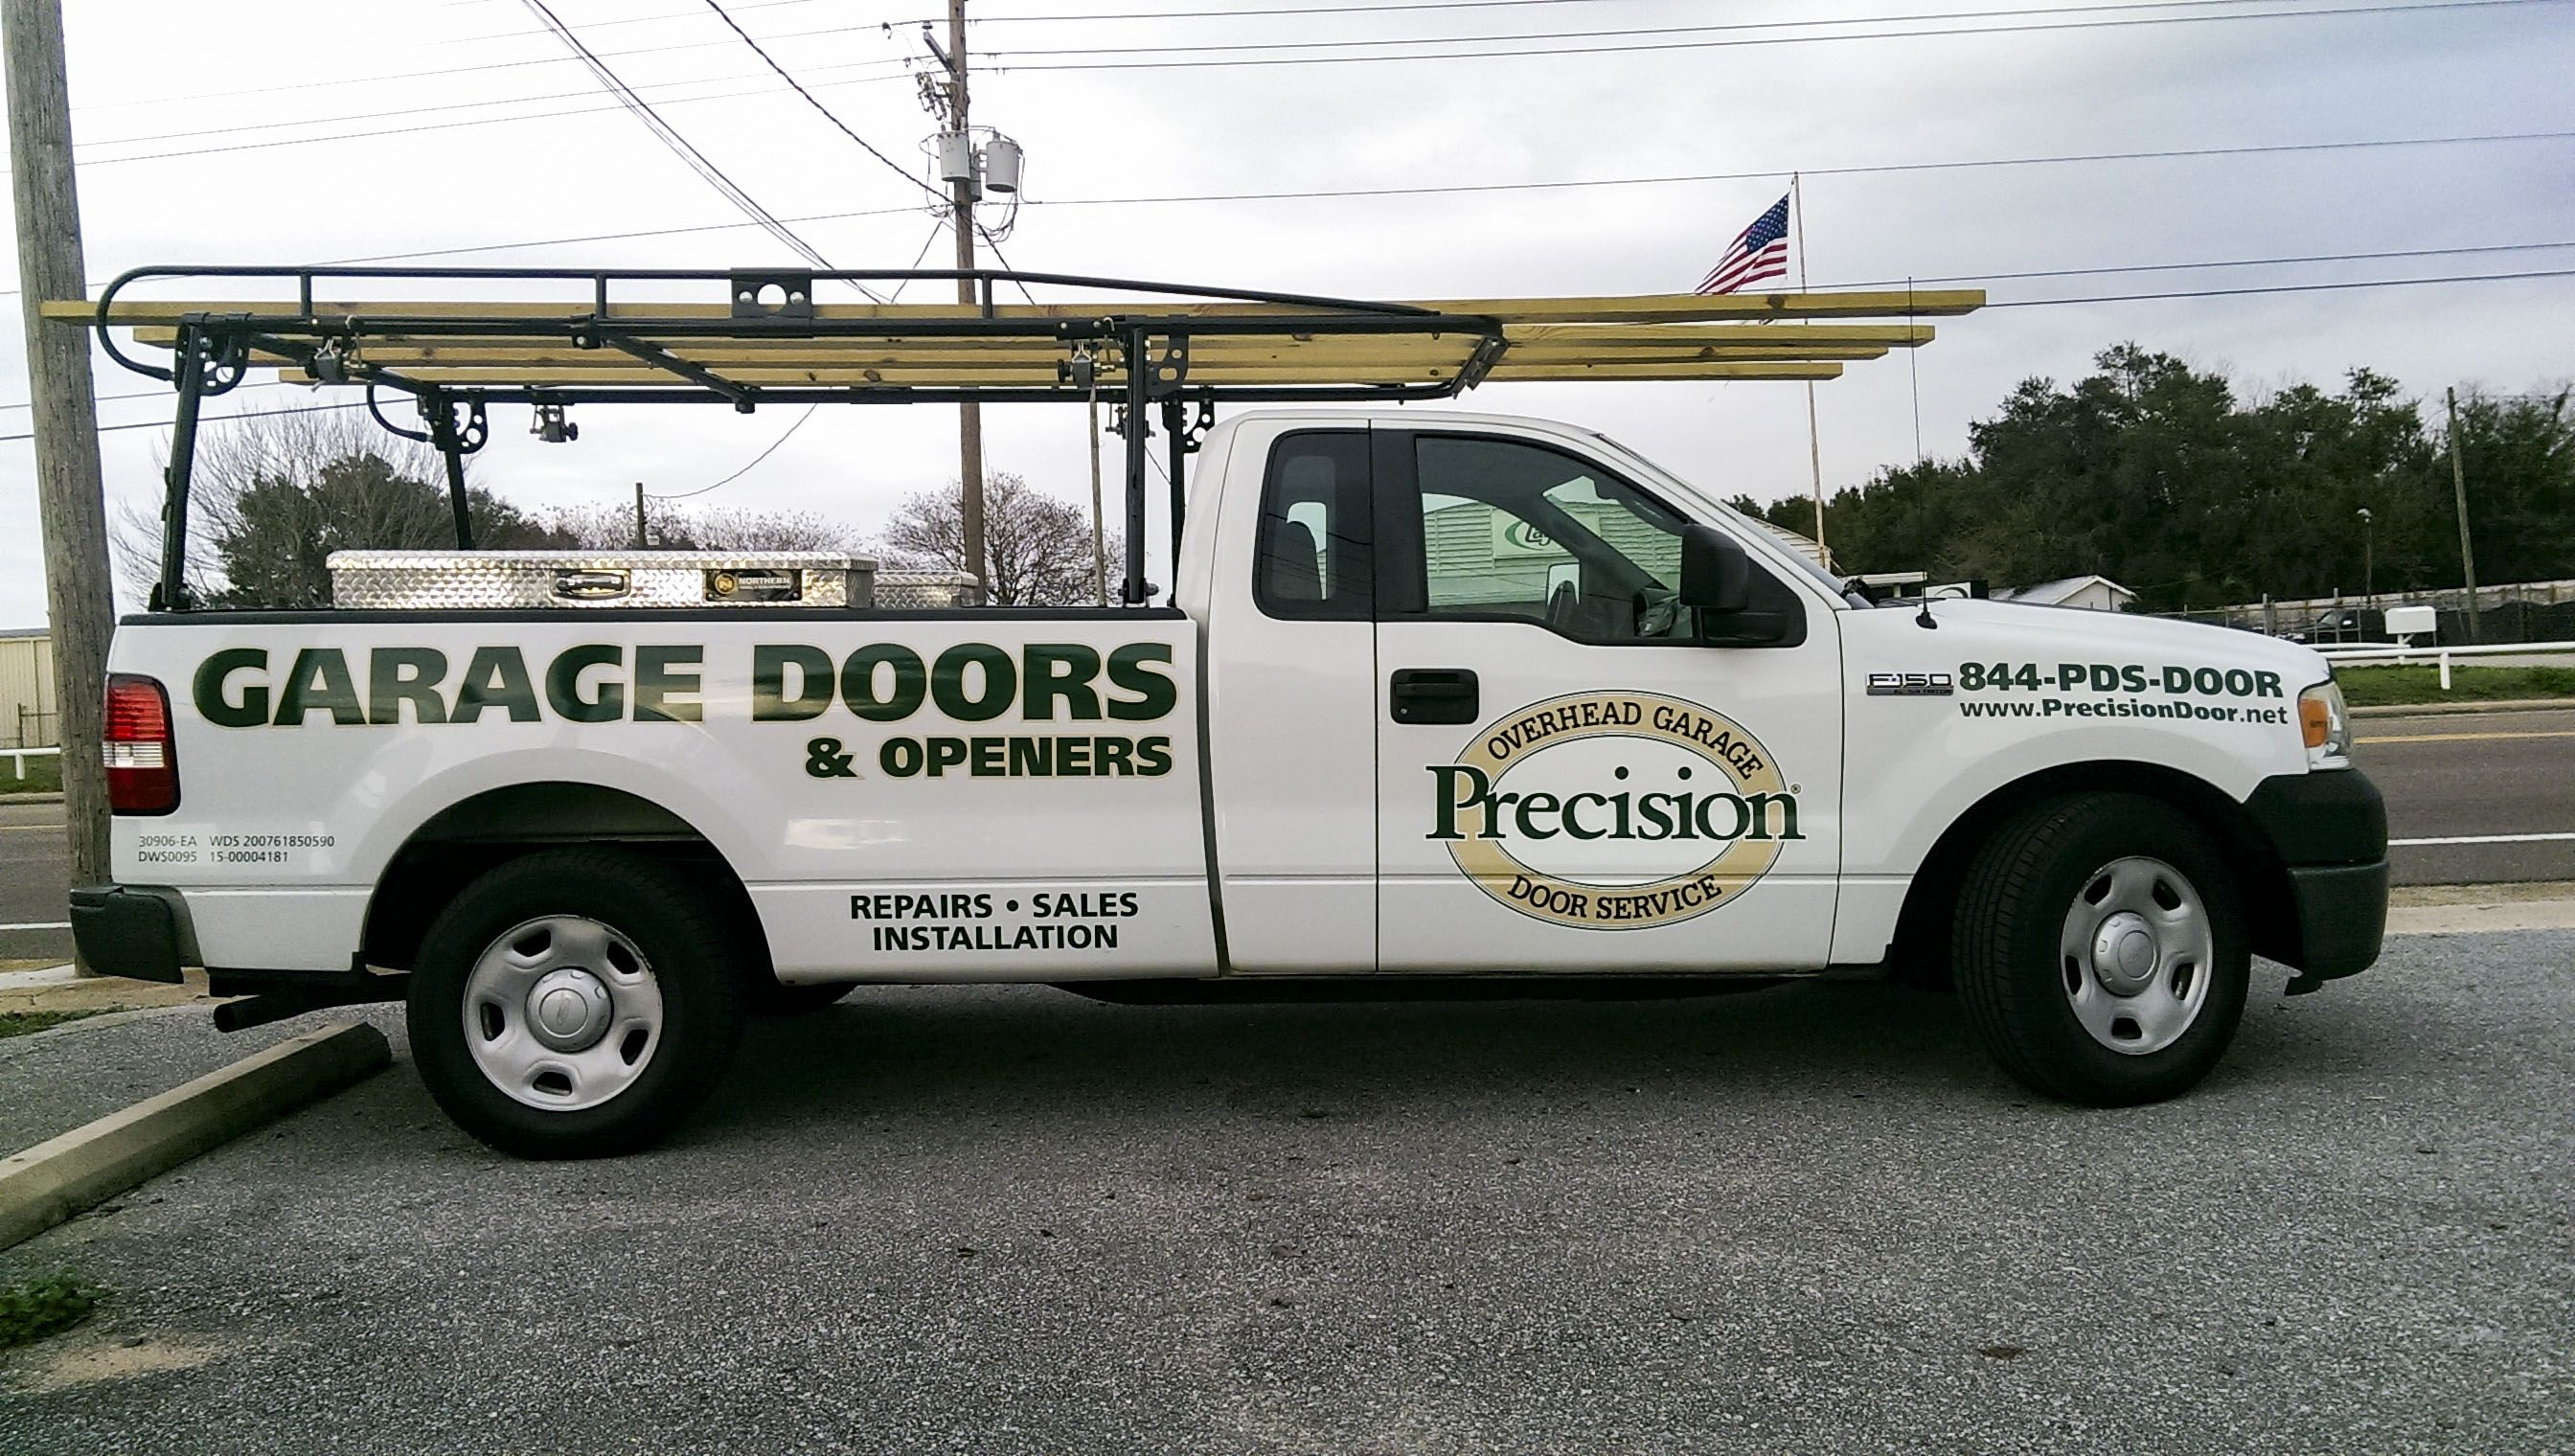 Precision Door Service Truck Graphics By Pensacola Sign In Pensacola Florida  F0 9f 9a 97 F0 9f 92 A8 On Average Vehicle Wraps Cost Less Than 1 Per Thousand Impressions And